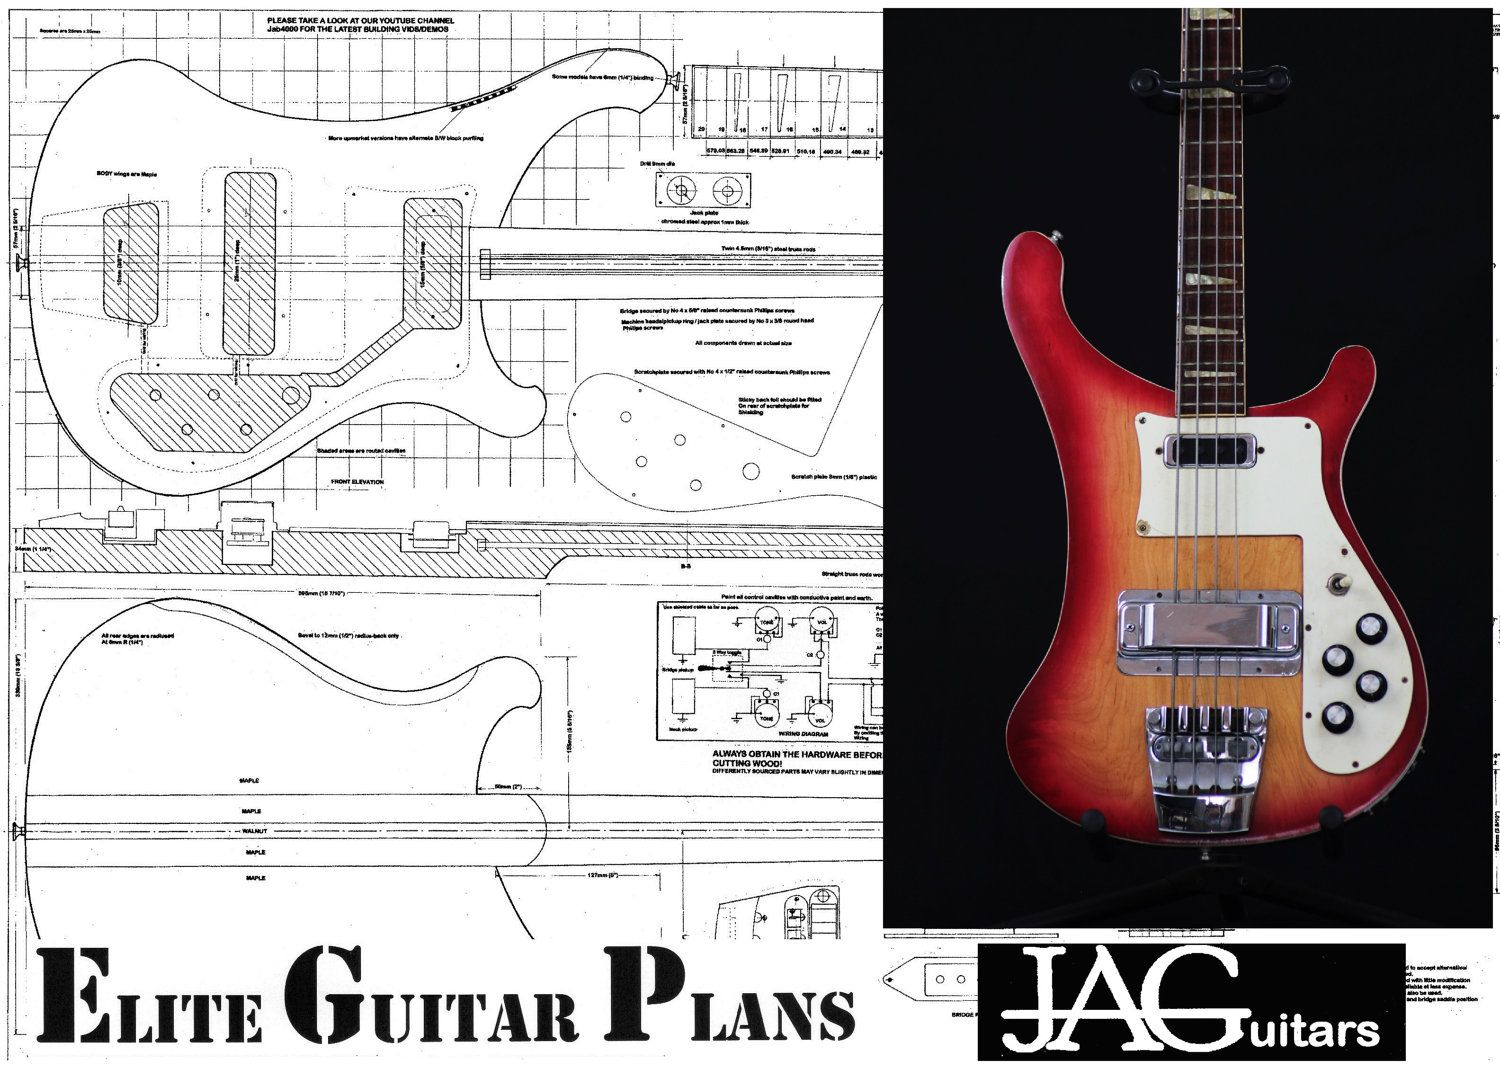 Full size plan to build a Rikki Bass Guitar